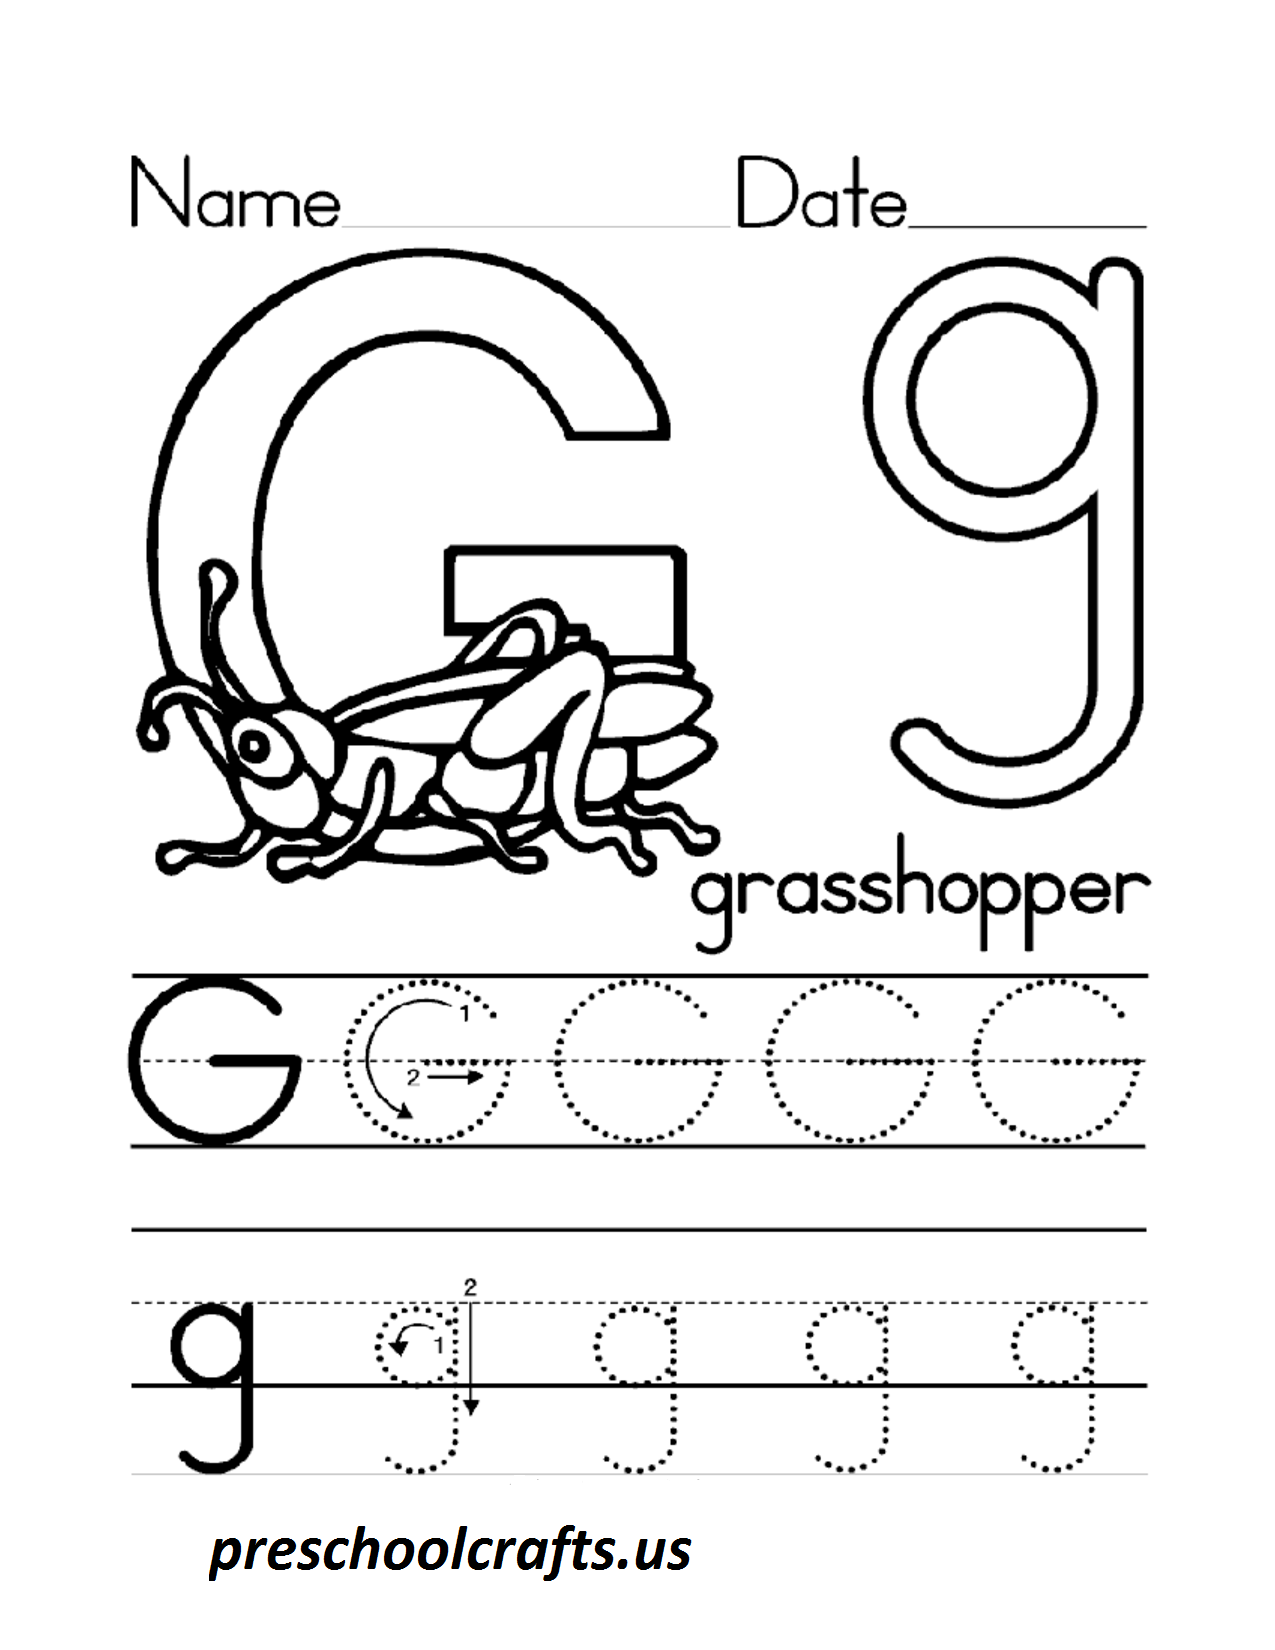 Free Preschool Dinosaur Coloring Worksheet